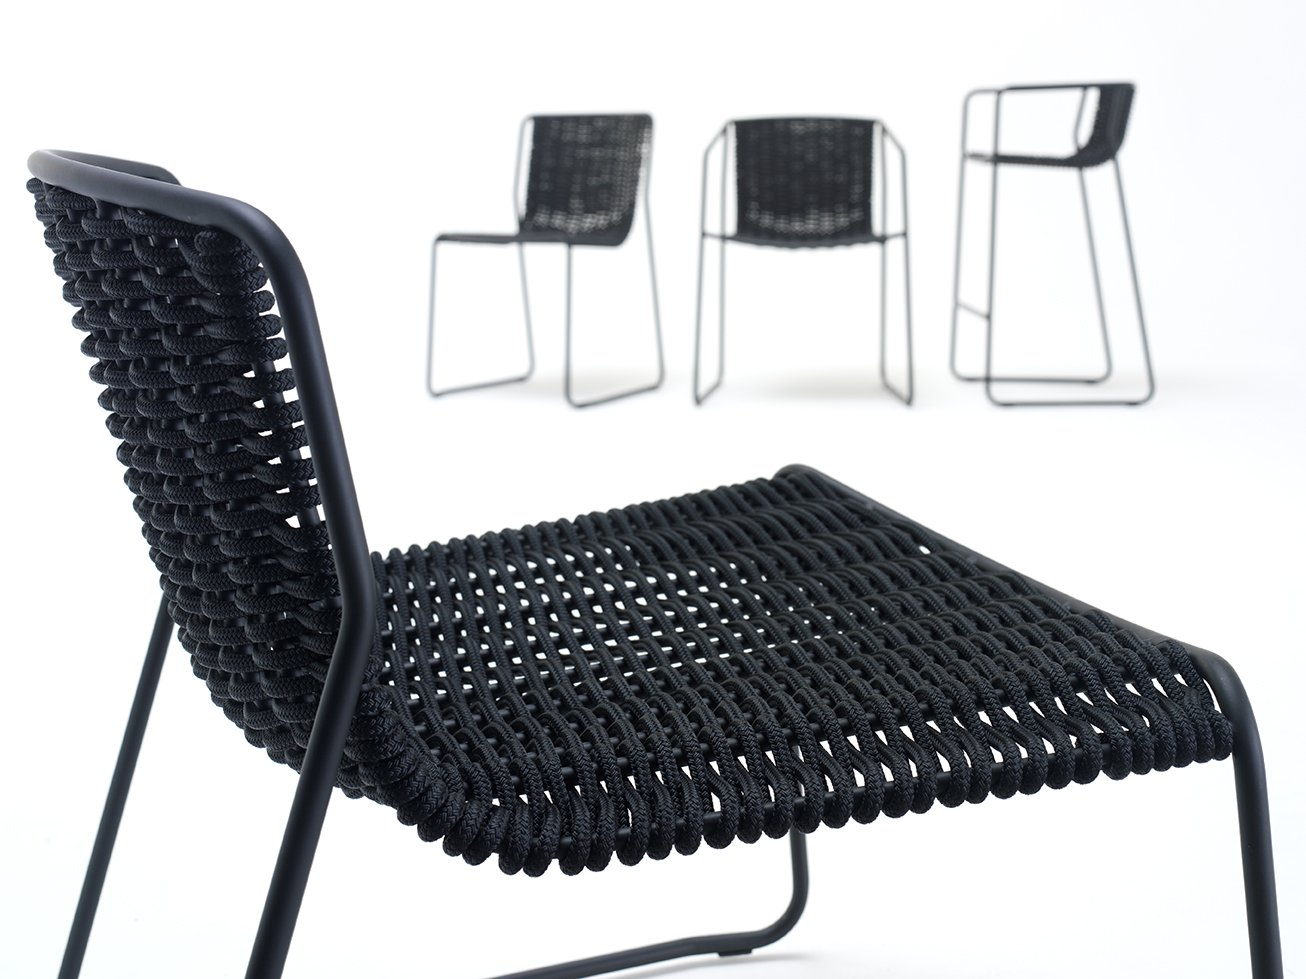 Randa Chair from Arrmet